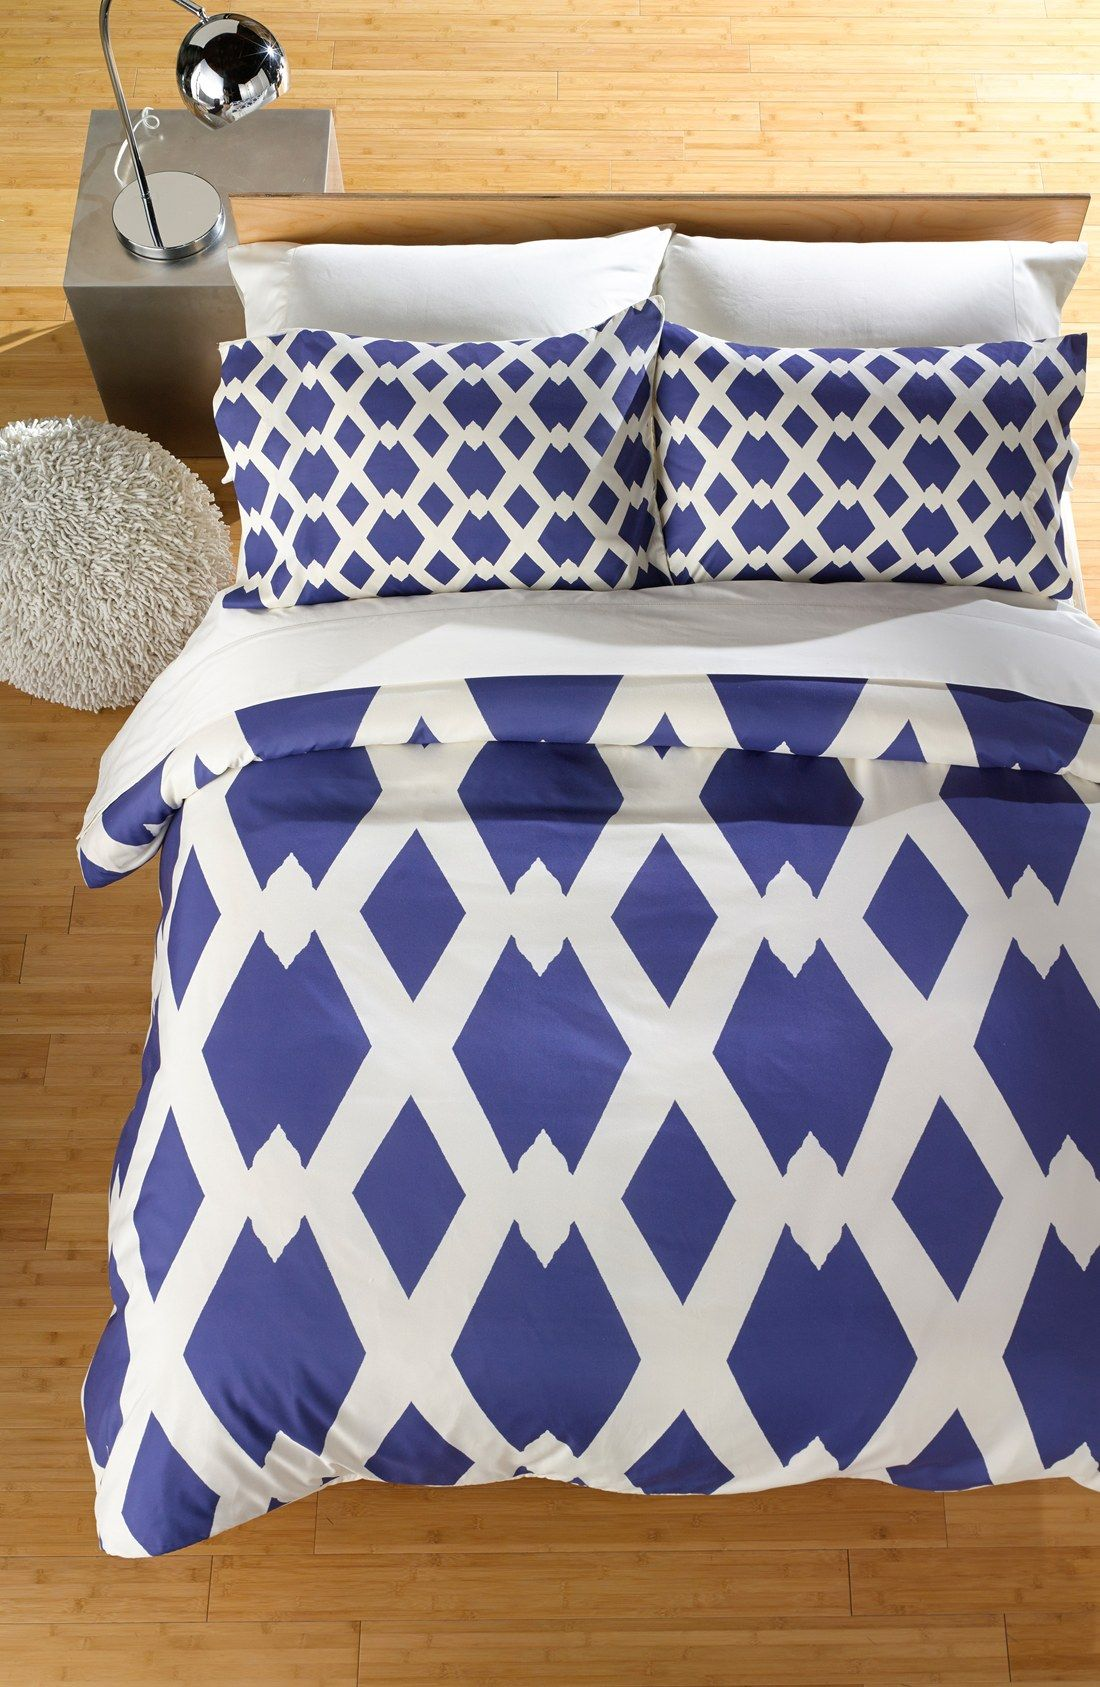 Deny Designs Daddy Lattice Duvet Cover Sham Set Nordstrom Duvet Cover Sets Duvet Covers Comfy Bedroom